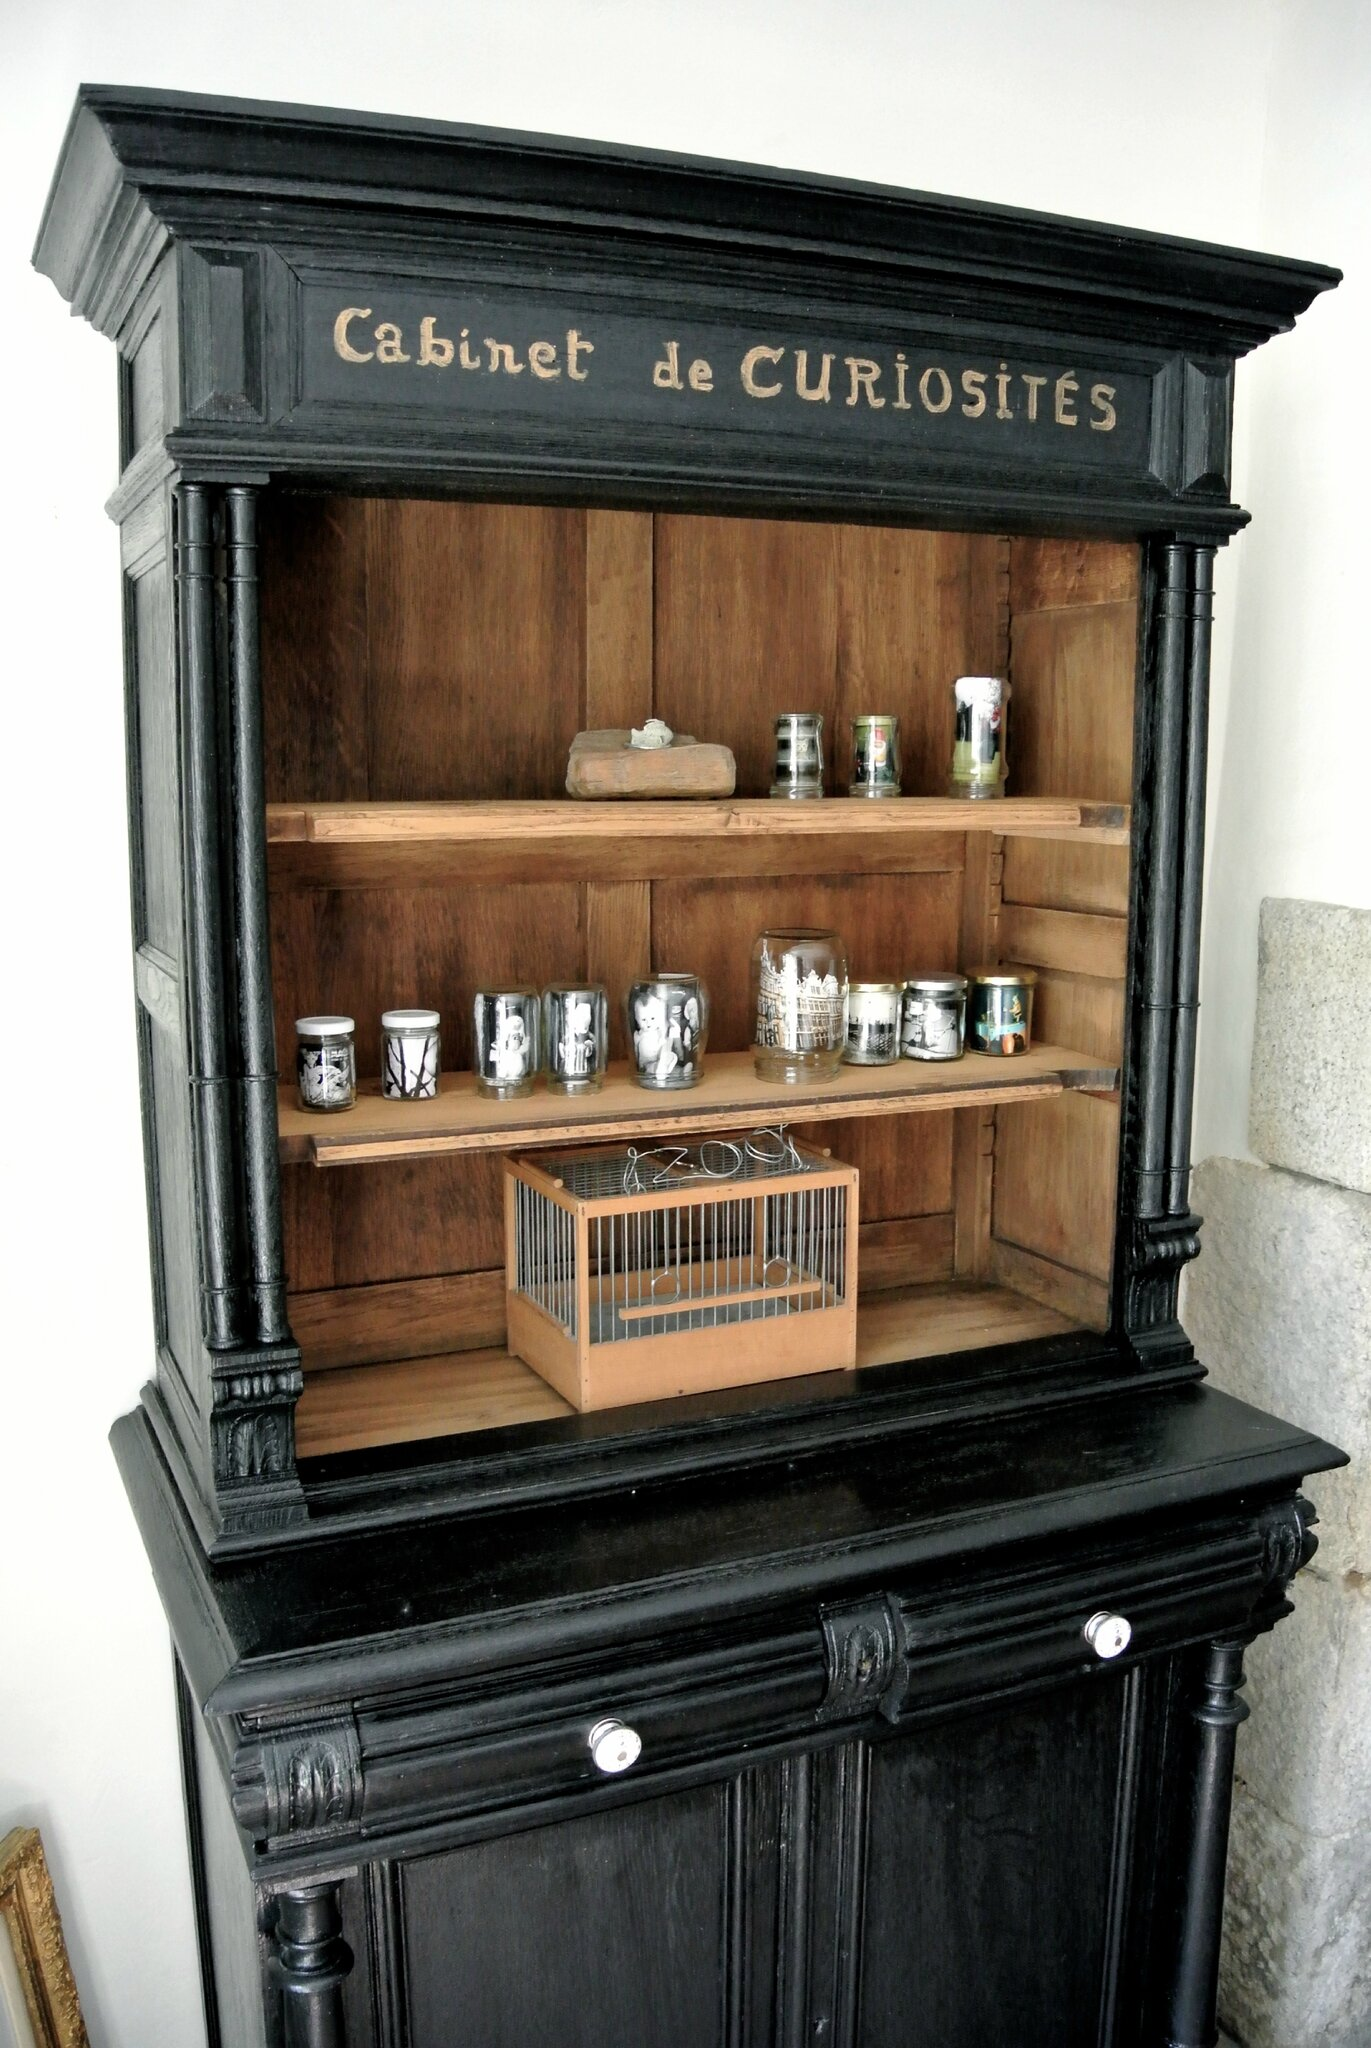 Cabinet de curiosit dr le meuble du photographe photo for Meuble cabinet de curiosite